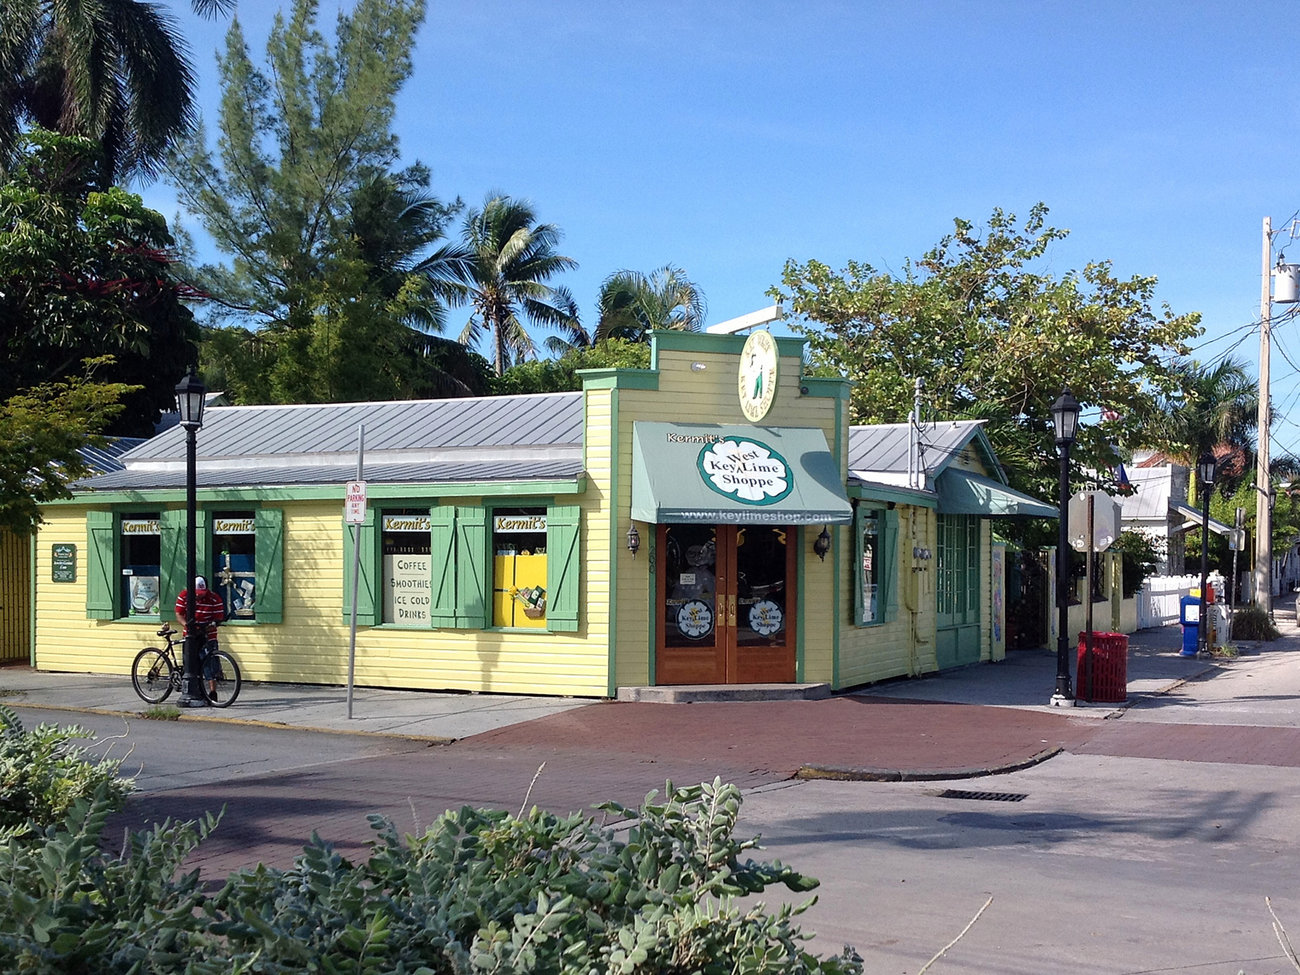 Kermit's Key West Key Lime Shoppe in Florida Keys